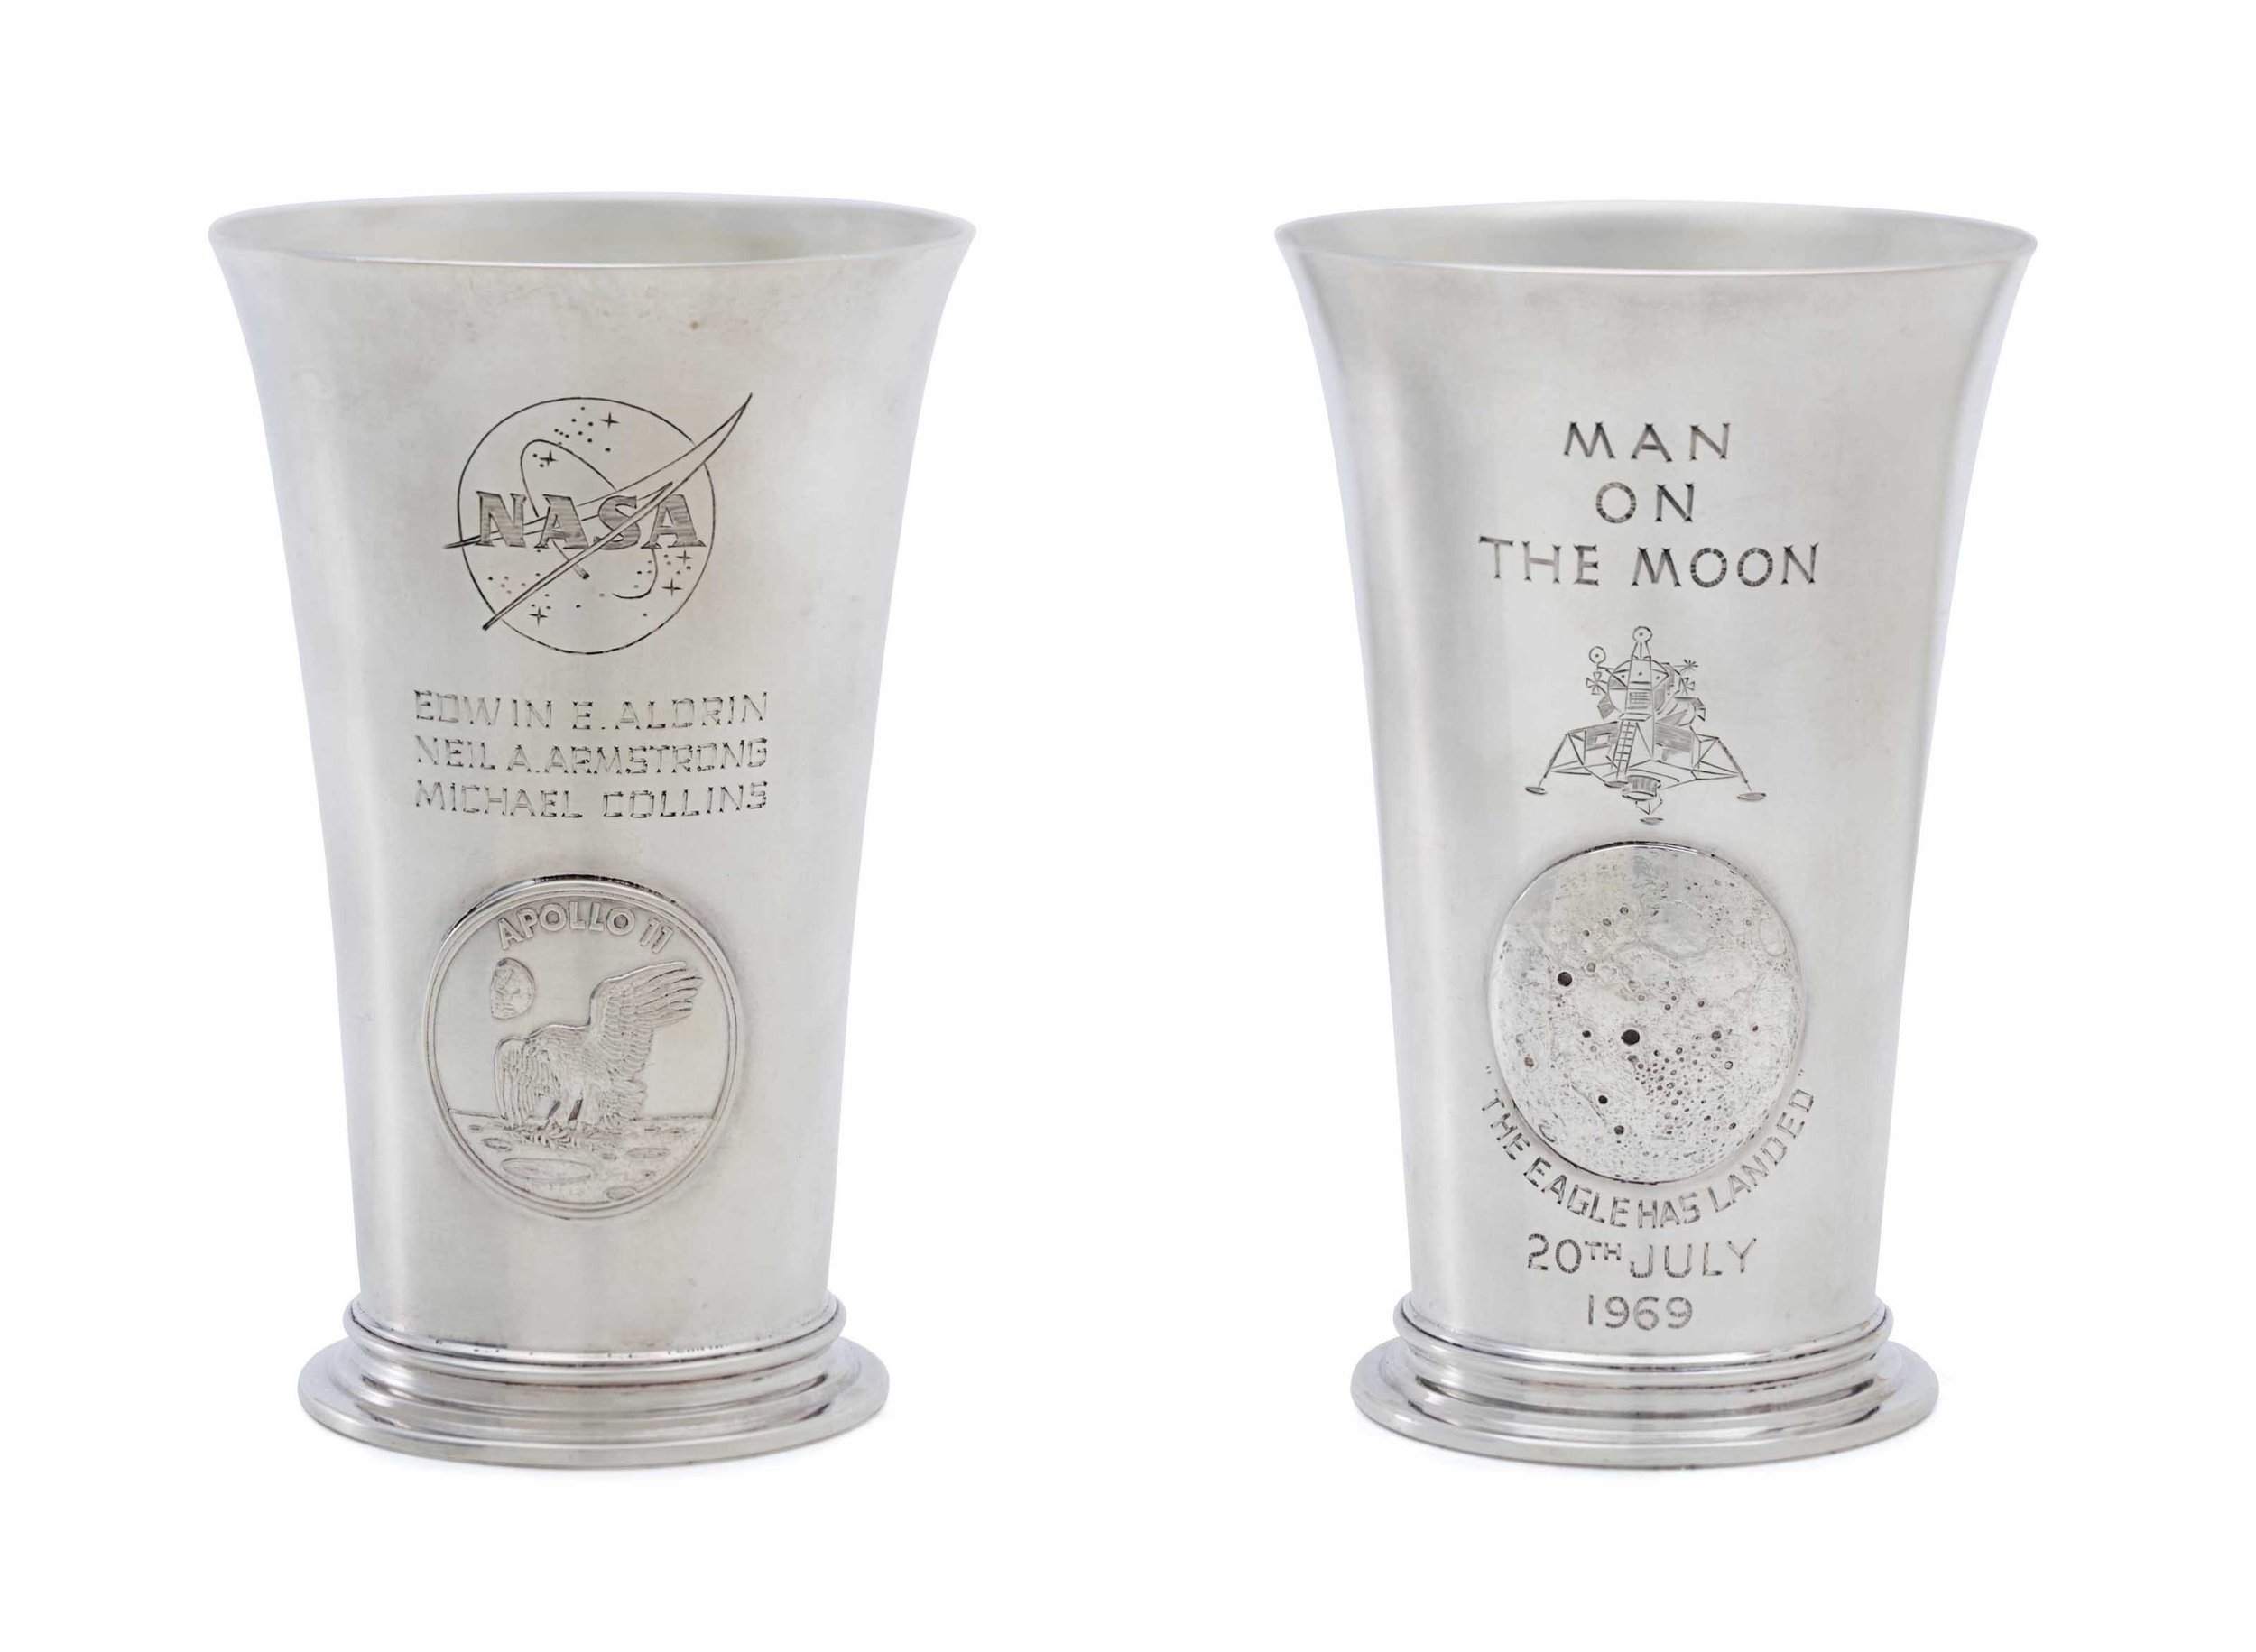 Engraved in 1969, NASA Silver Beakers to commemorate The Moon Landings. Each was sent to the crew and Richard Nixon. With a Thank you Letter from Neil Armstrong himself.